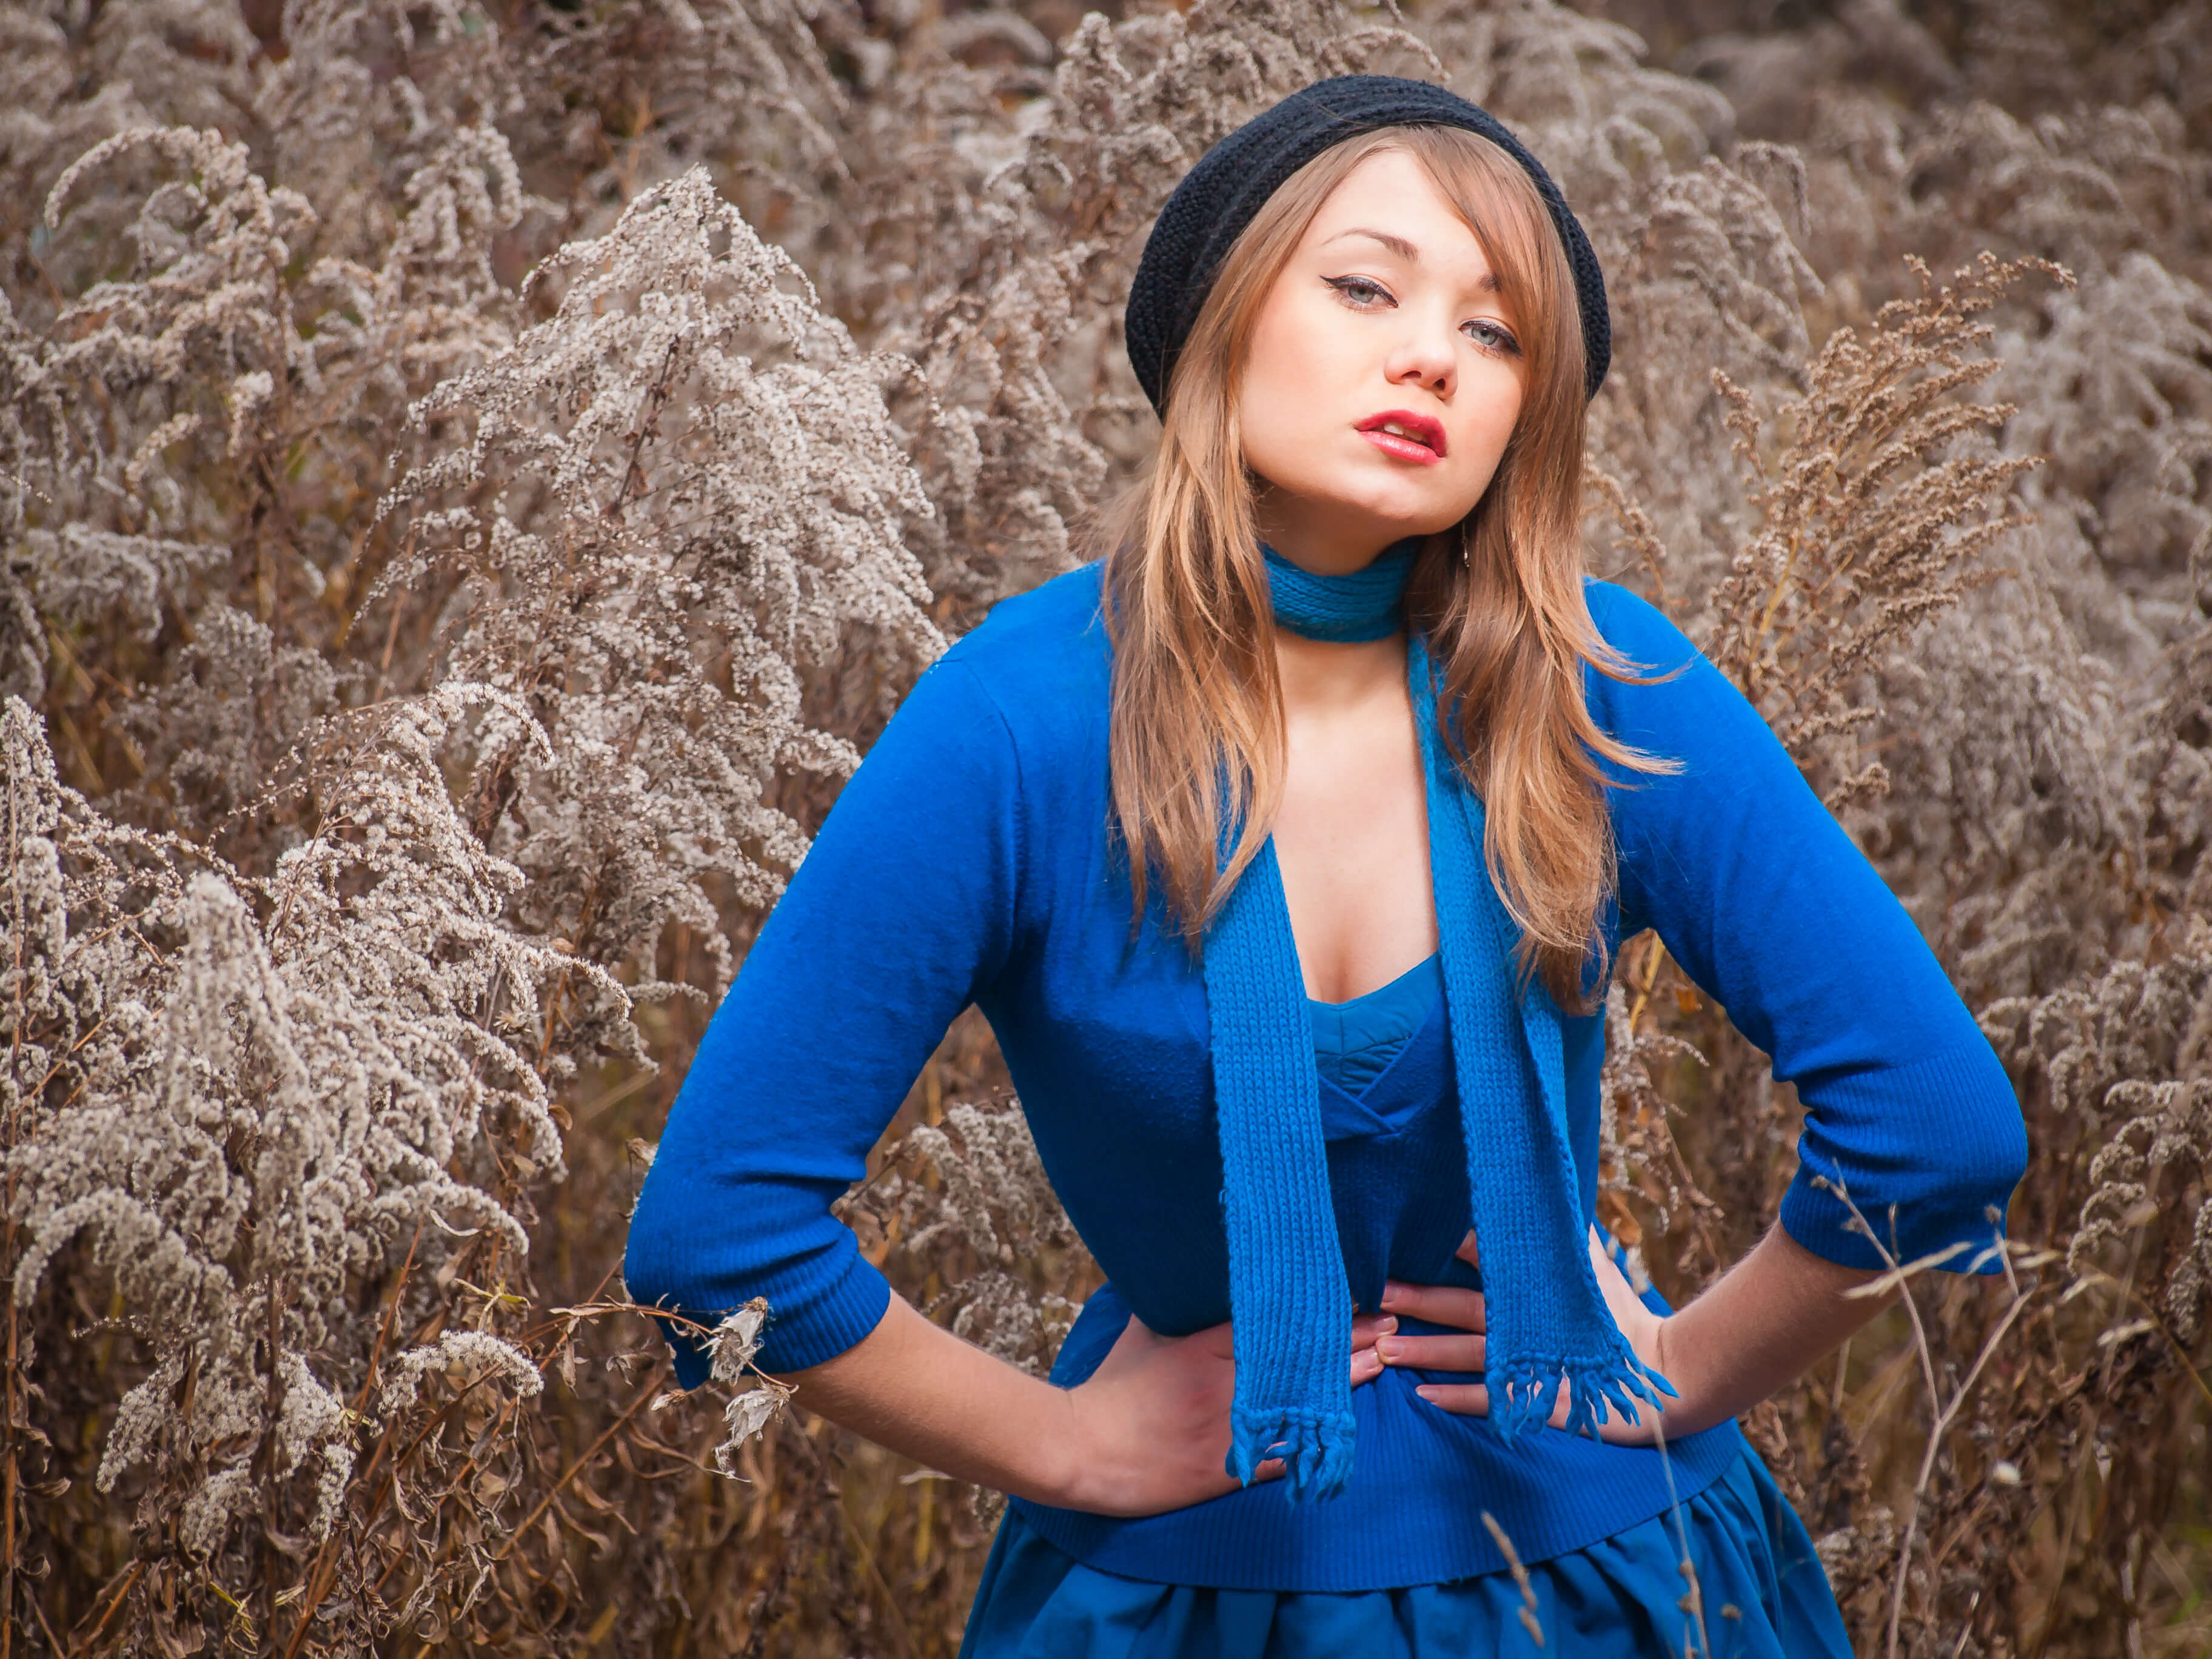 Commercial portrait fashion model girl in a blue dress in a blue scarf in a field commercial photography production of clothes and products for brands of social pages photo made by Fantastic Imago Branding, Advertising and Consulting Agency